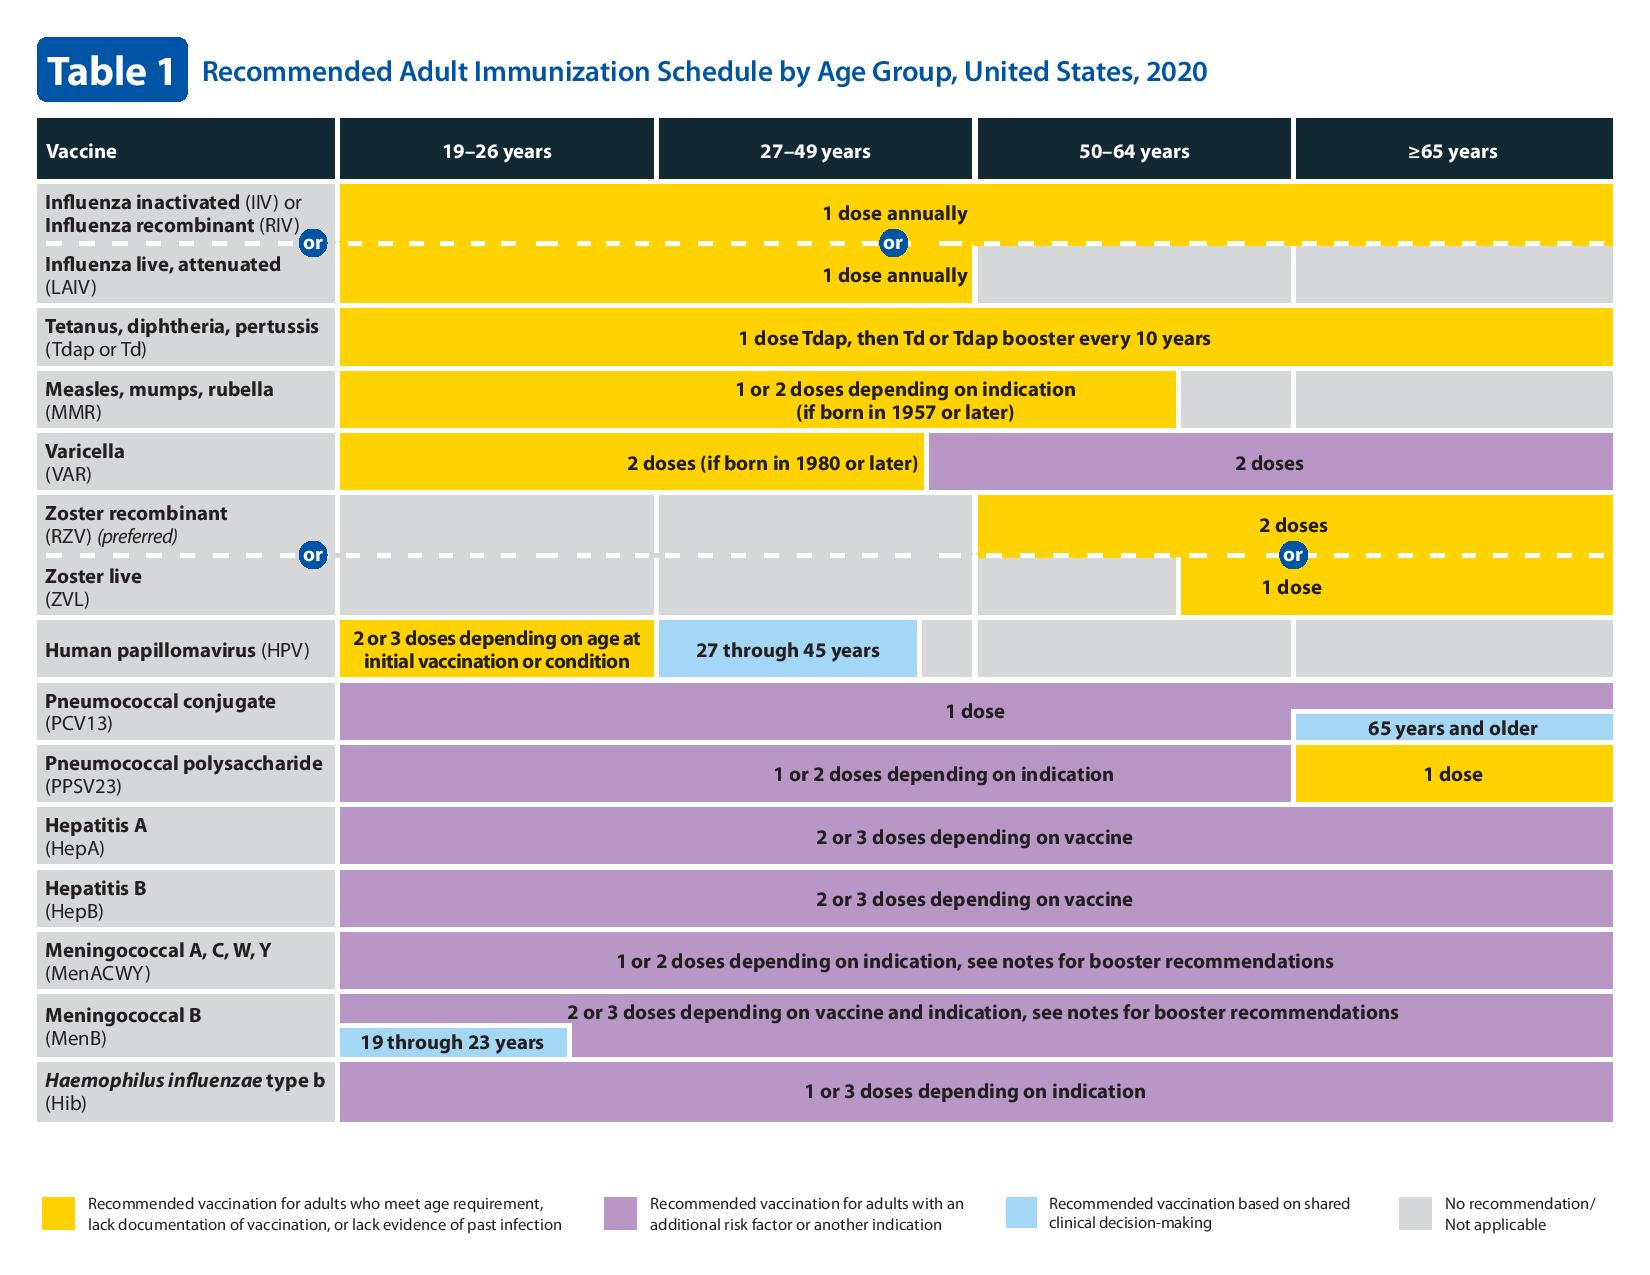 Recommended Immunizations for Adults by Age